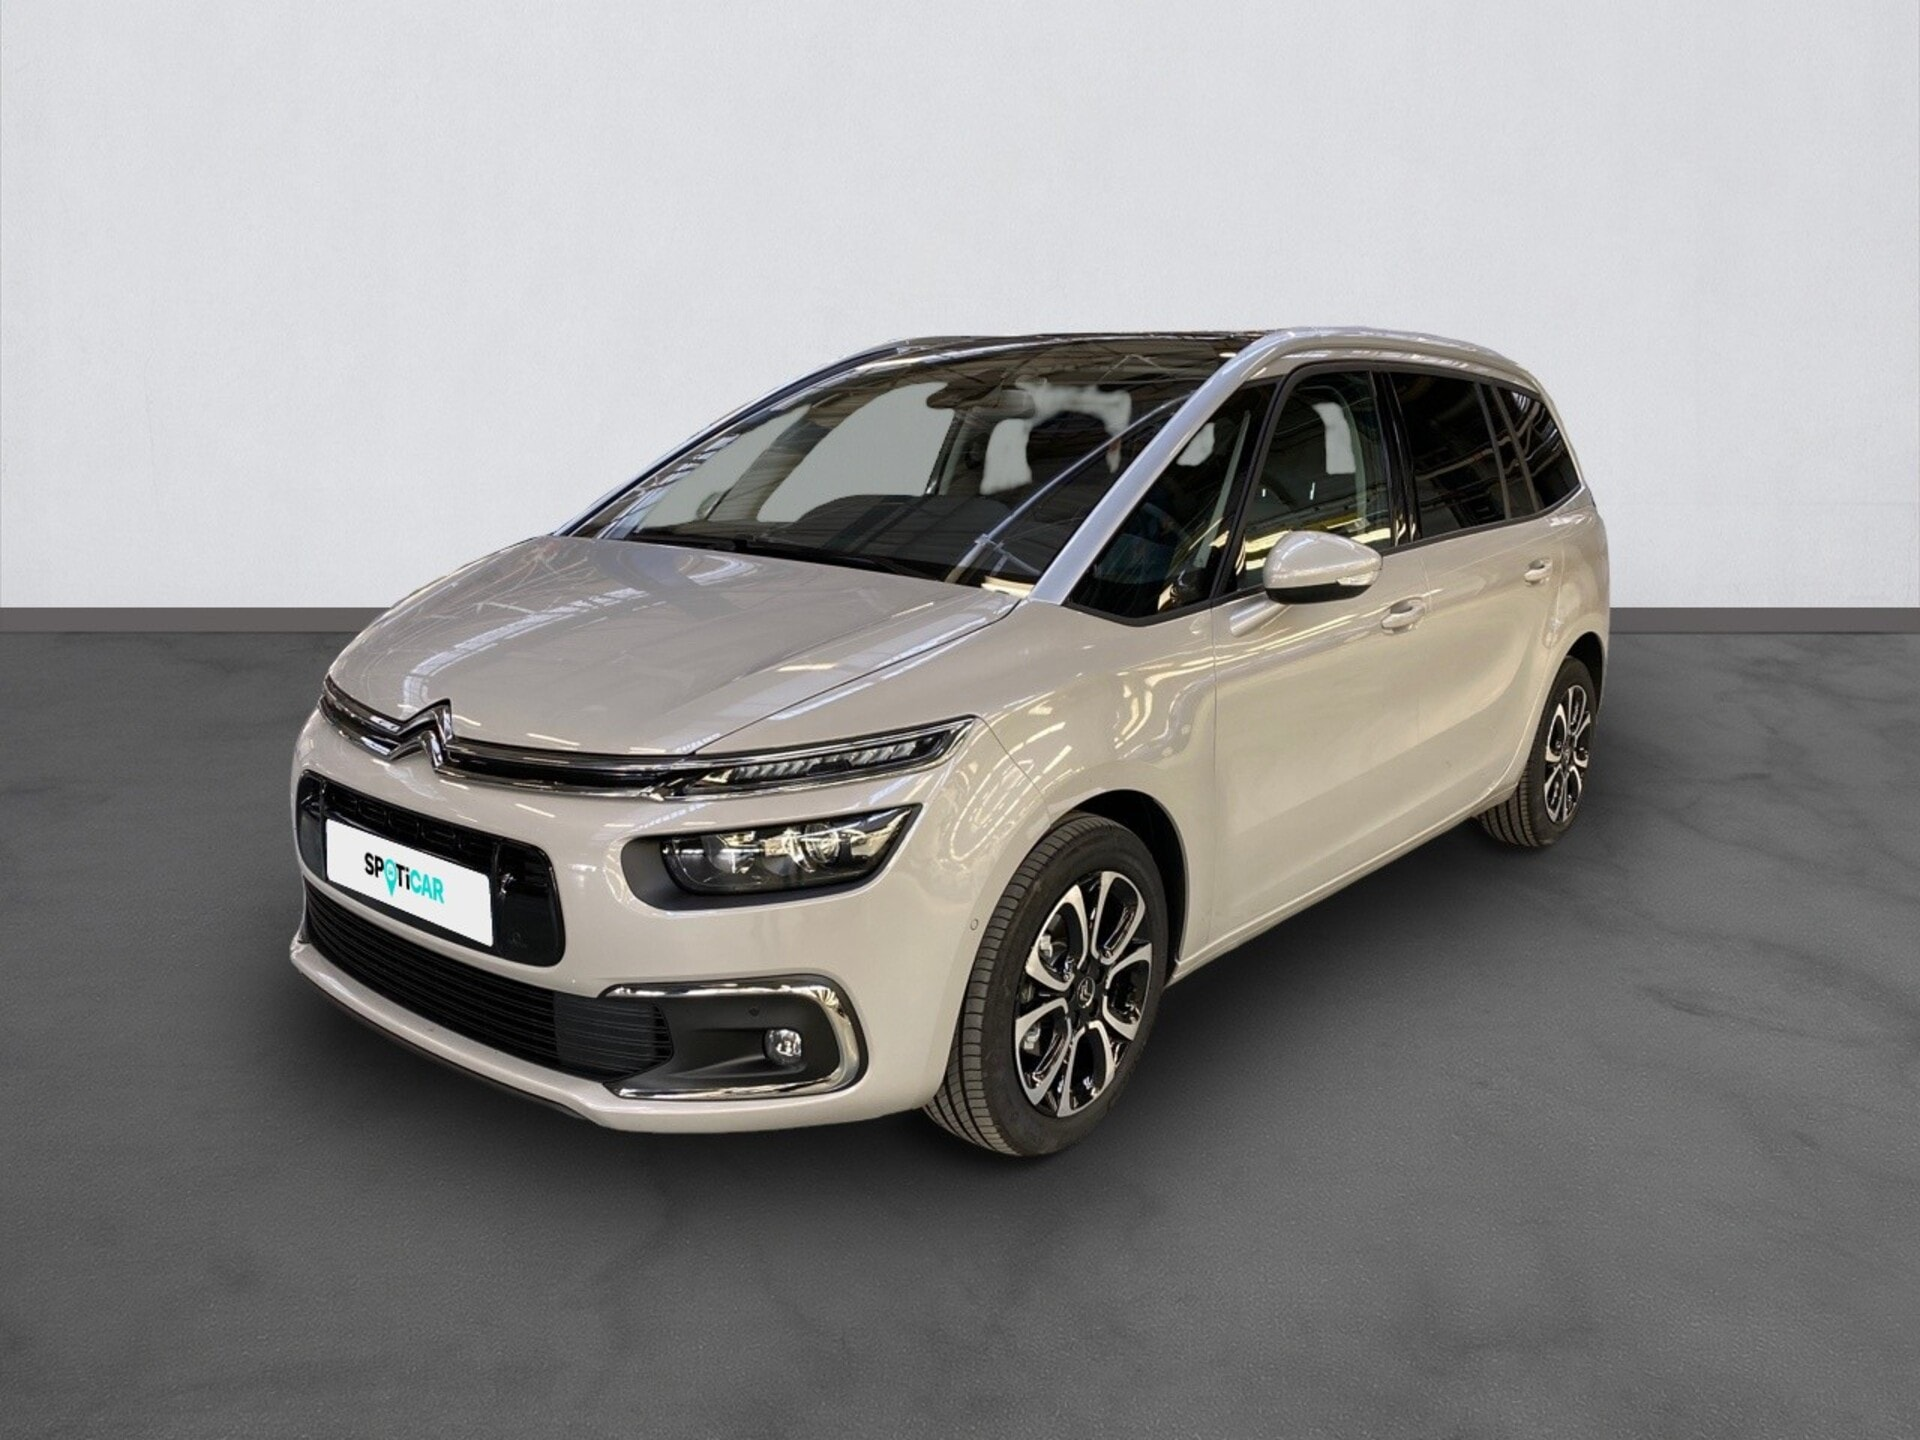 CITROEN GRAND C4 SPACETOURER BLUEHDI 130 S&S BVM6 SHINE PACK - Carventura